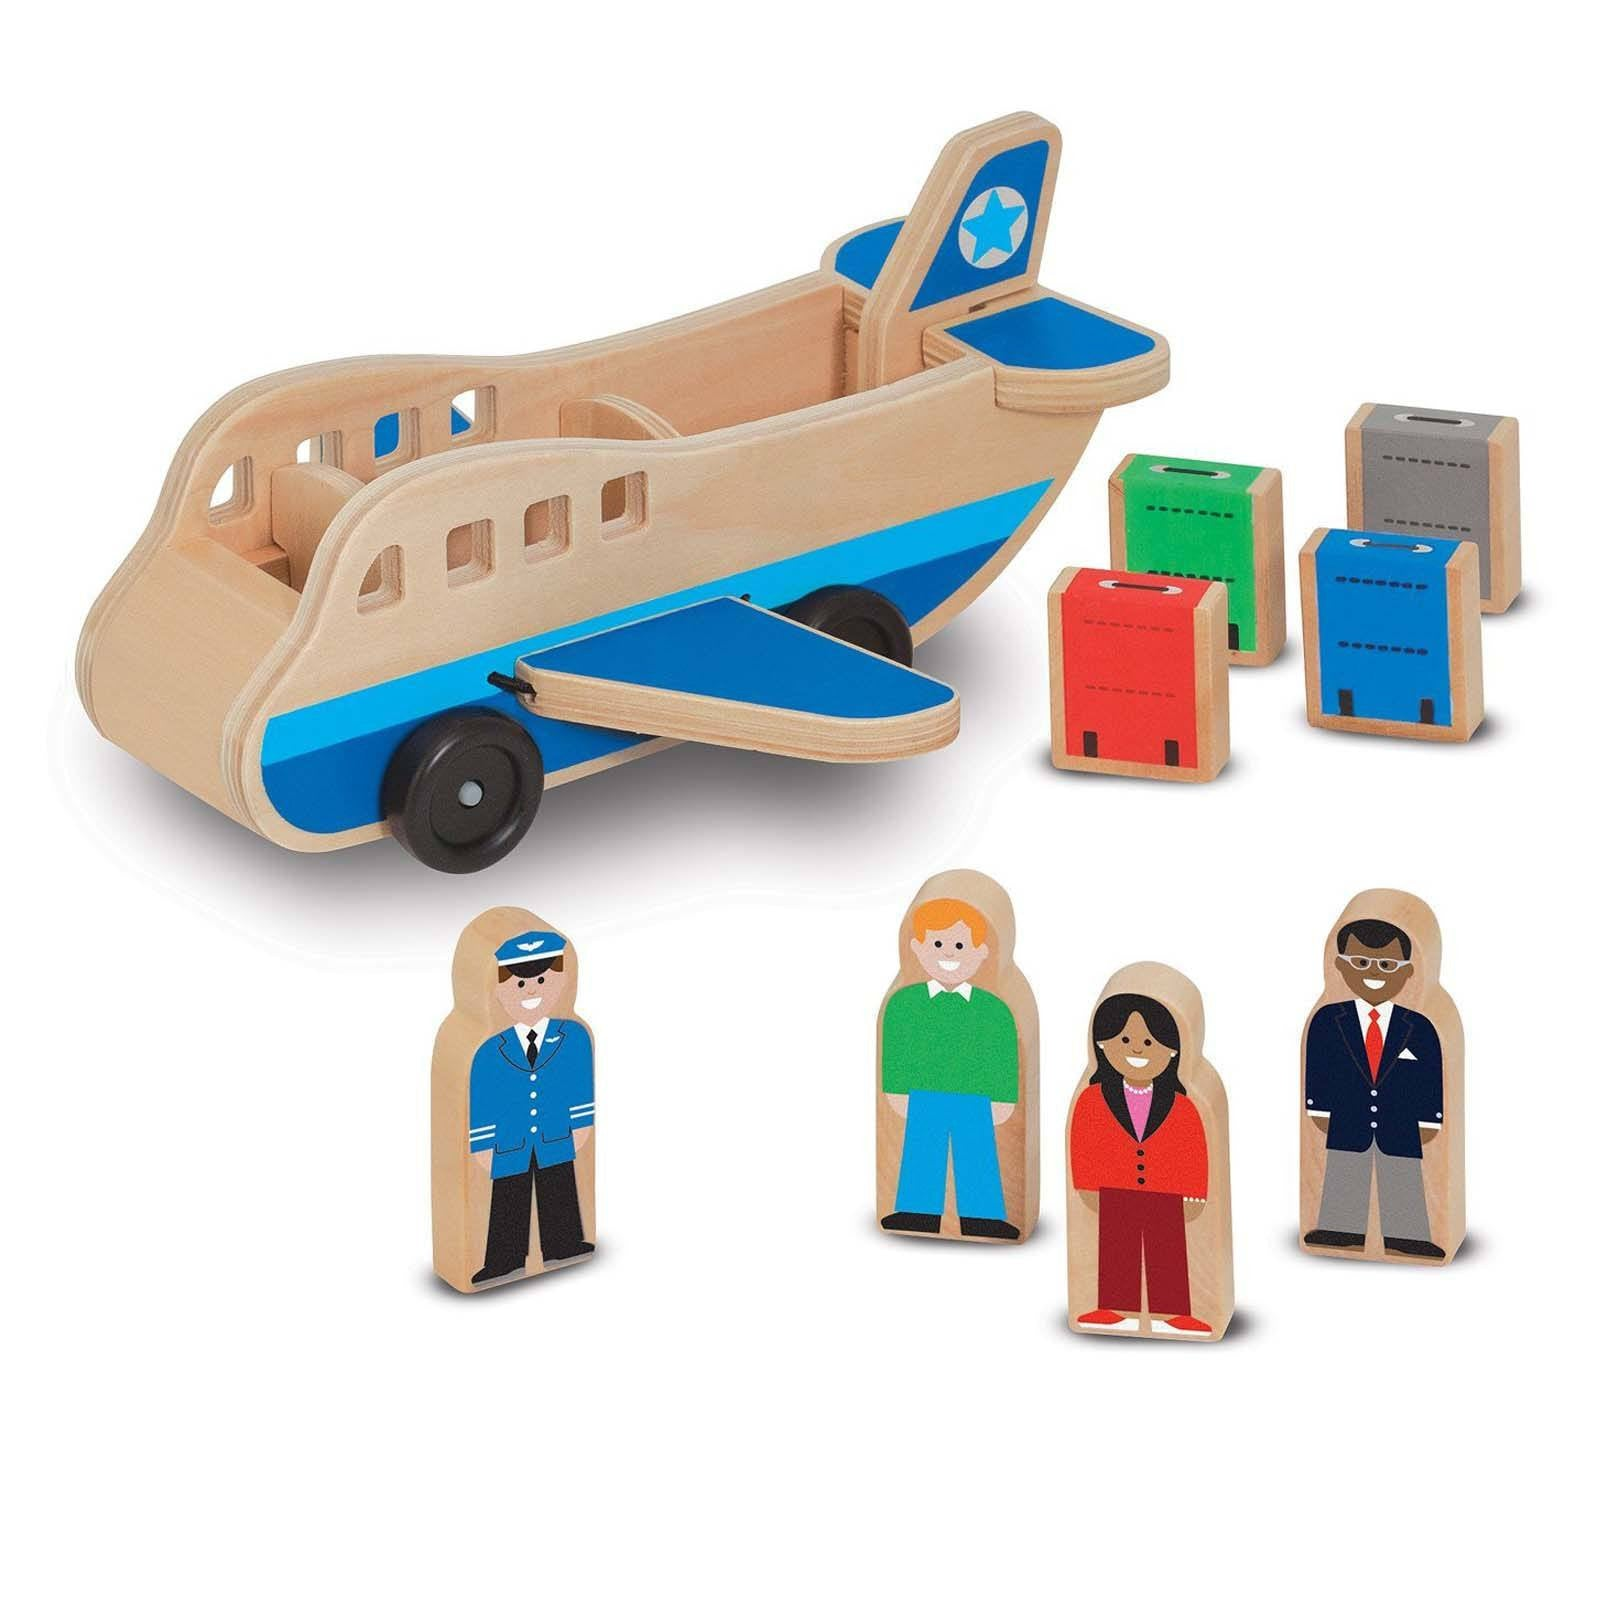 Kids Wooden Vehicles Airplane Set Wooden Plane With Figures